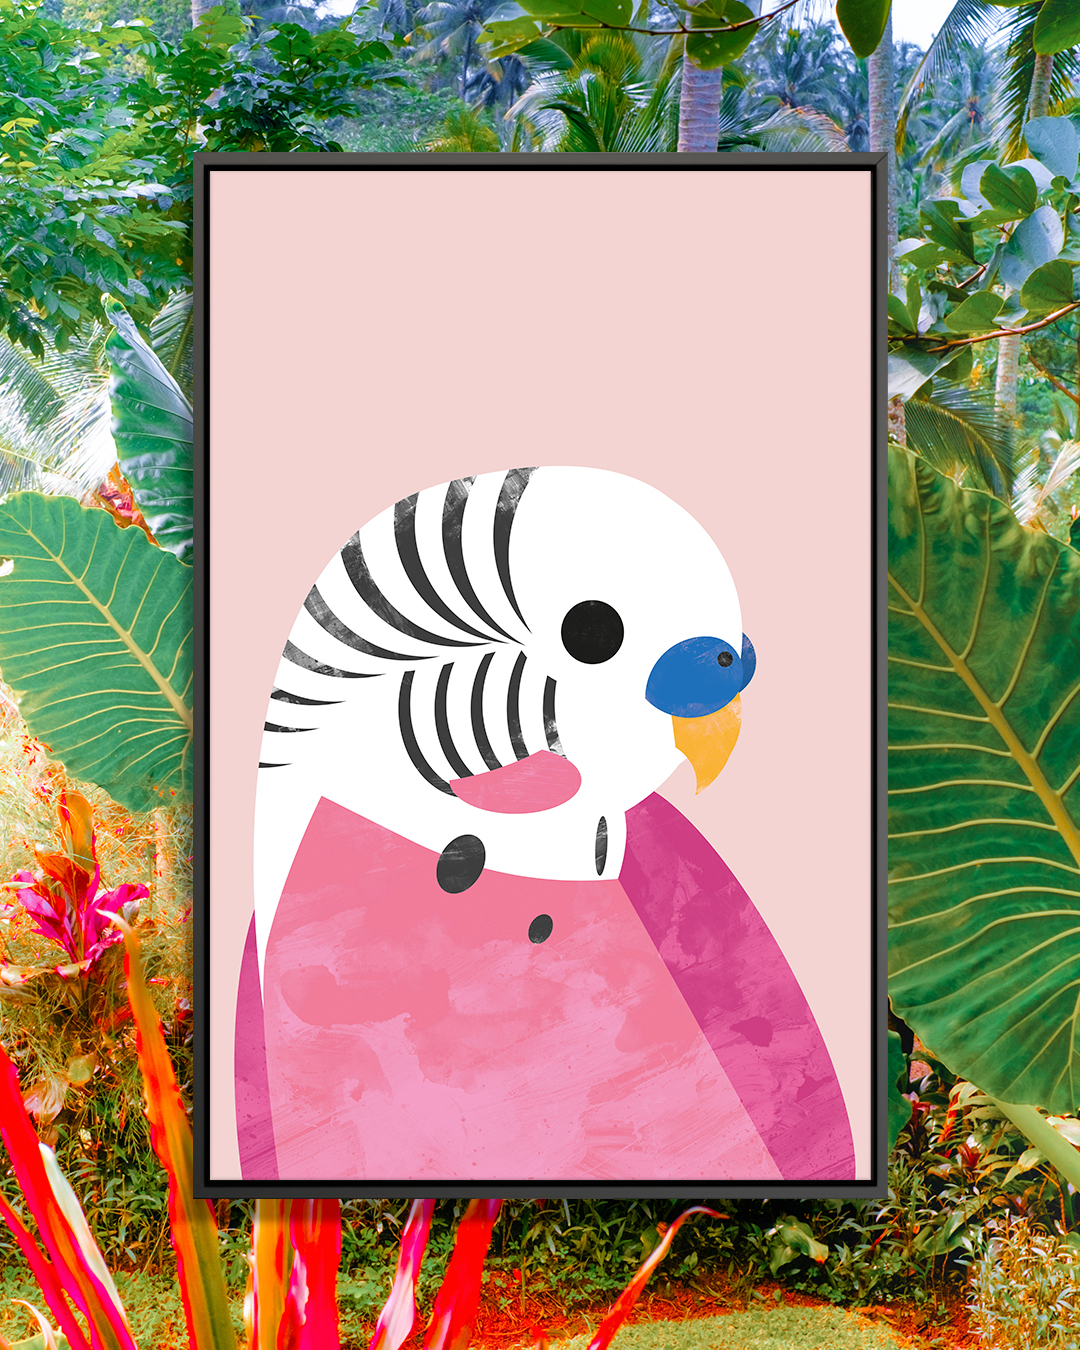 """""""Budgie"""" by Dan Hobday shows a white and pink budgerigar against a pink background."""